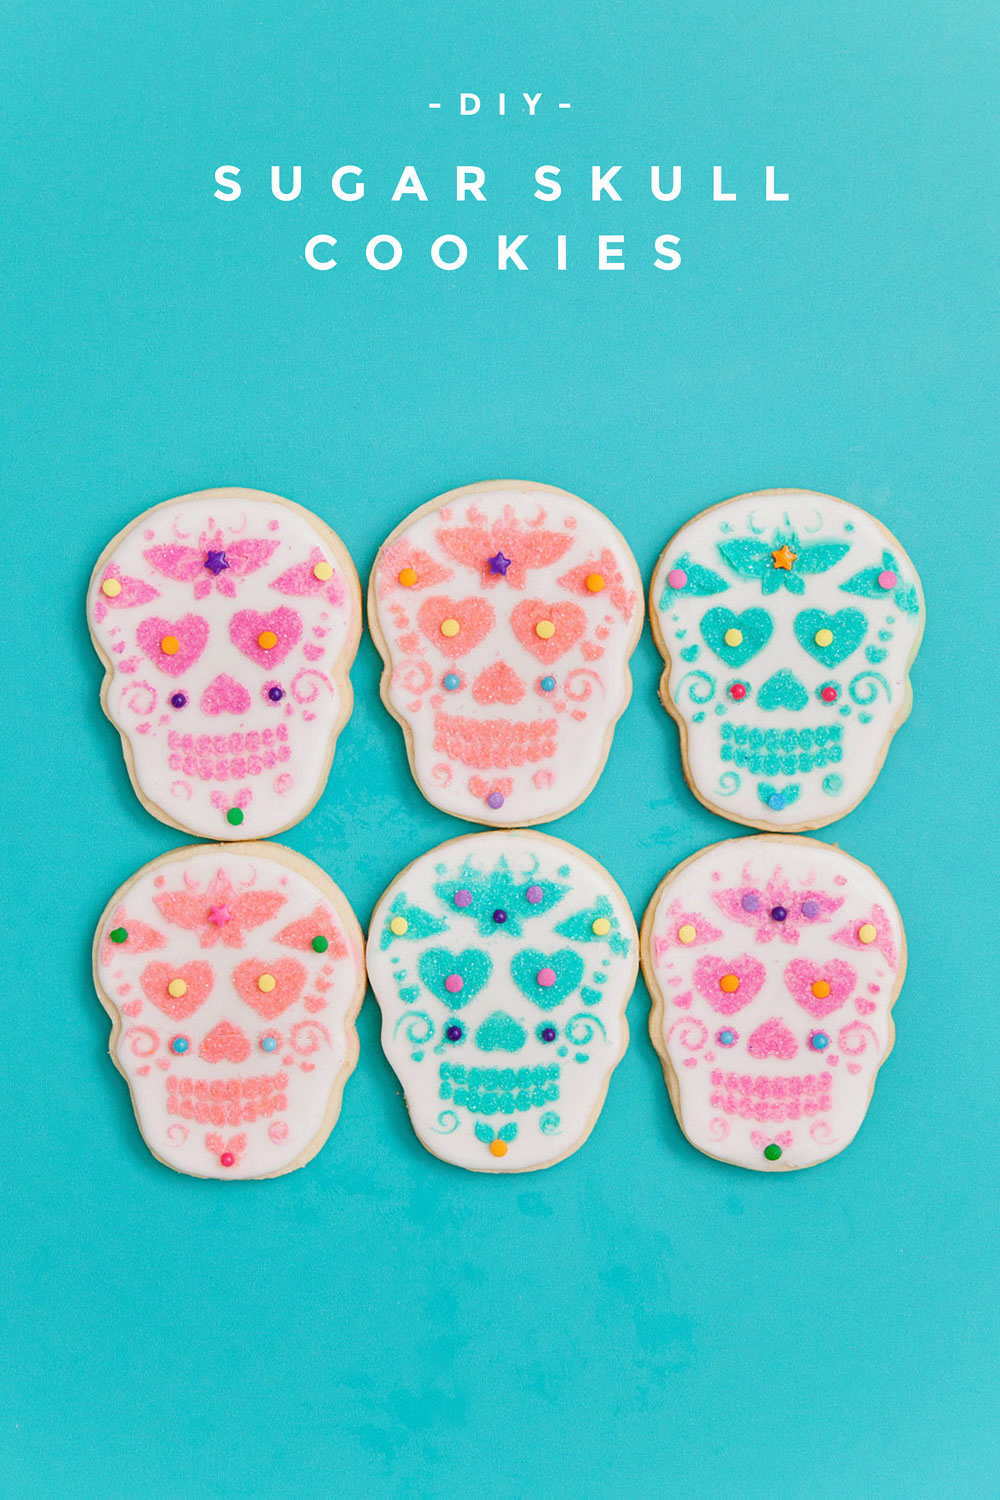 DIY sugar skull cookies in honor of Dia de los Muertos! Learn this new fun cookie decorating technique that is so simple ANYONE can do it. No decorating skills necessary.